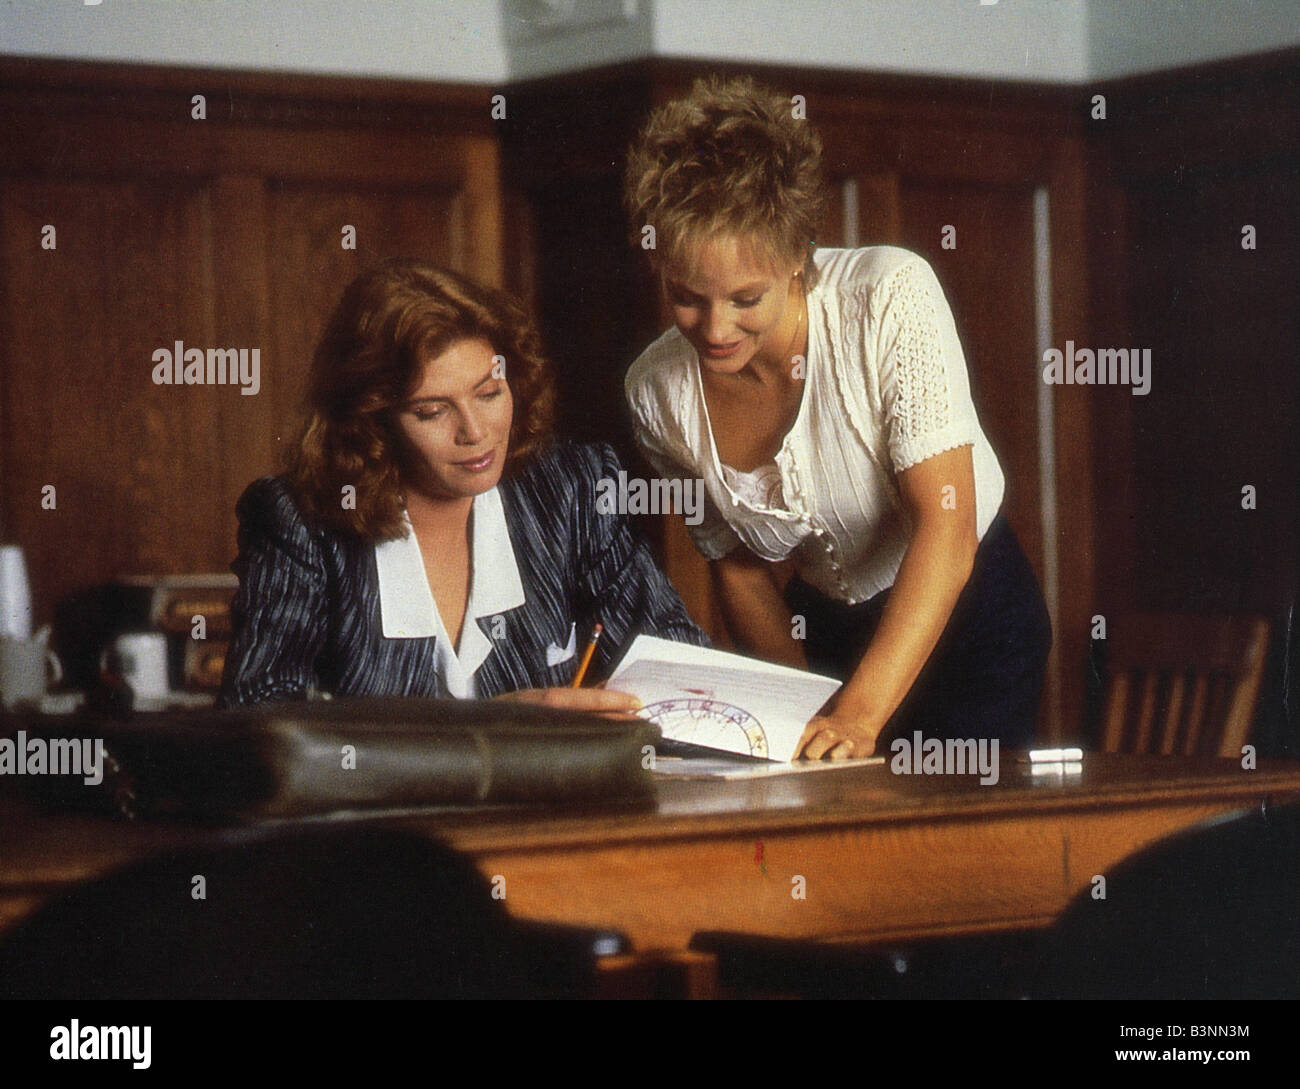 the accused uip paramount film kelly mcgillis at left stock photo the accused 1988 uip paramount film kelly mcgillis at left and jody foster